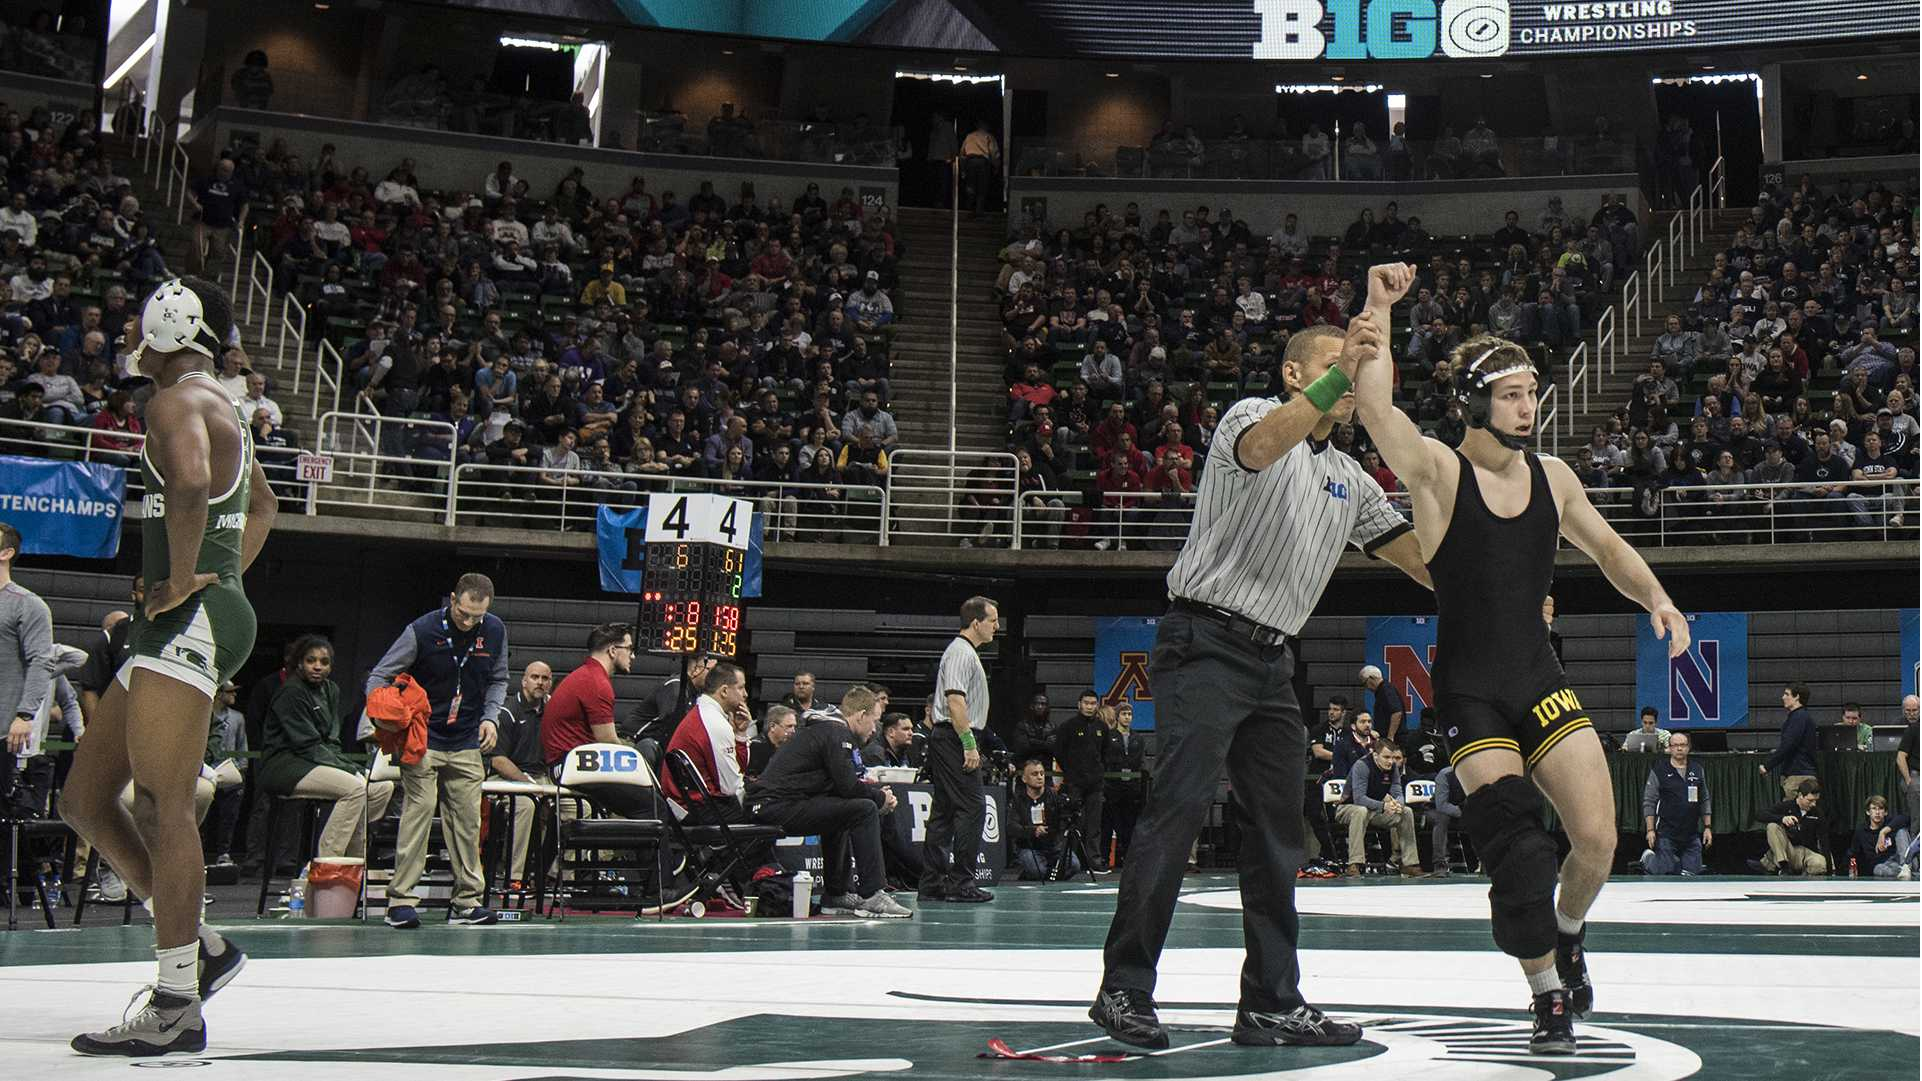 Iowa's 125-pound Spencer Lee beats Michigan State's RayVon Foley in the first round of Session 1 of the Big Ten Wrestling Championships Day 1 at the Breslin Student Events Center in East Lansing, MI on Saturday, Mar. 3, 2018. (Ben Allan Smith/The Daily Iowan)